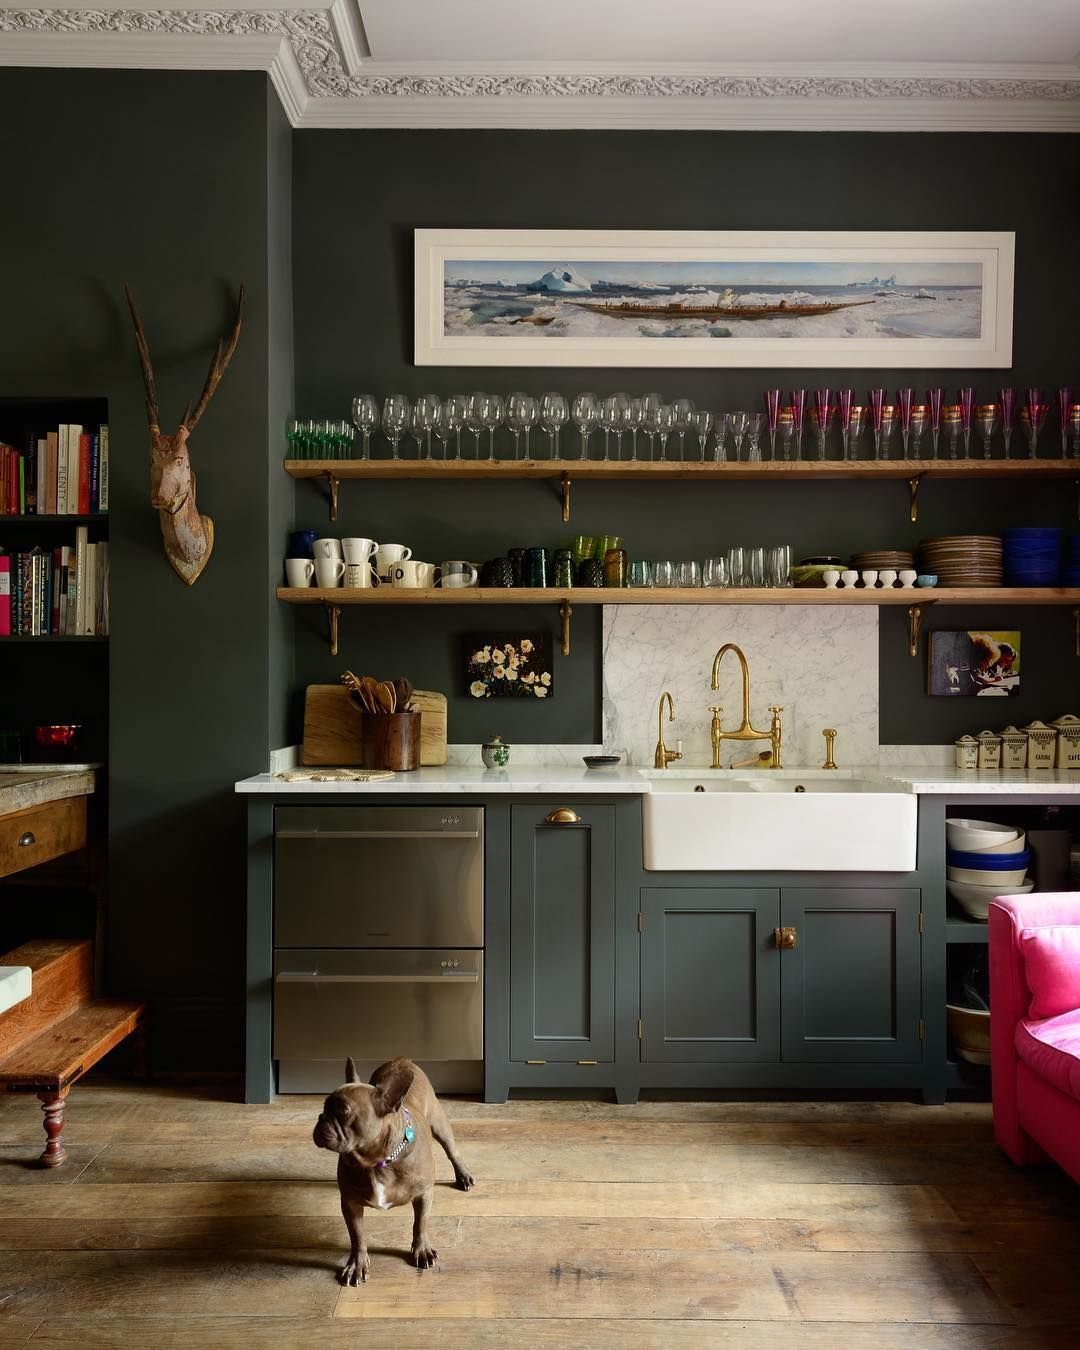 Devol Kitchens On Instagram If You Are Looking For A Beautifully Handmade Kitchen With Hi Devol Kitchens Shaker Style Kitchen Cabinets Kitchen Cabinet Styles